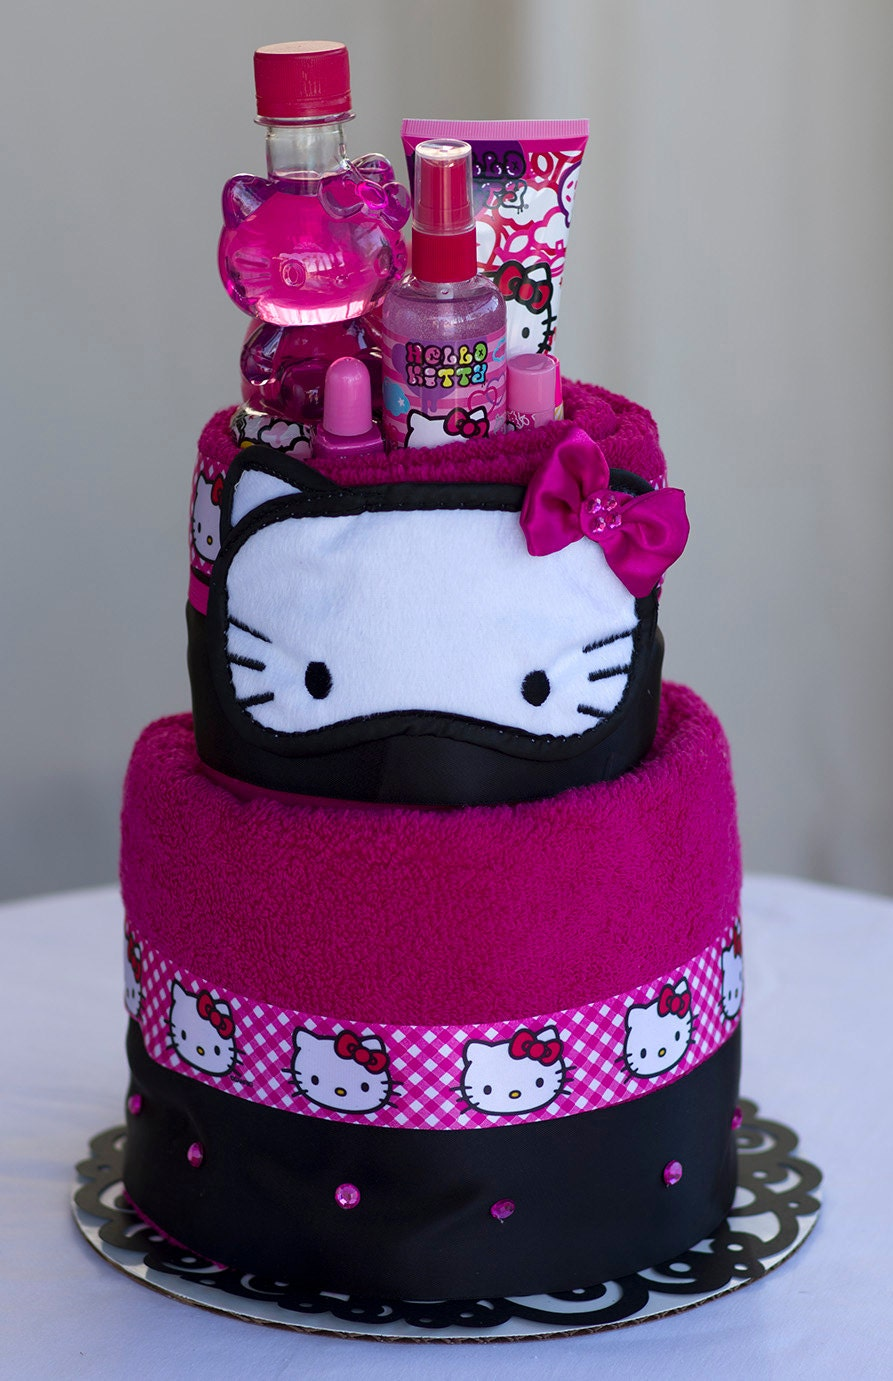 The Hello Kitty Towel Cake Birthday Or Special